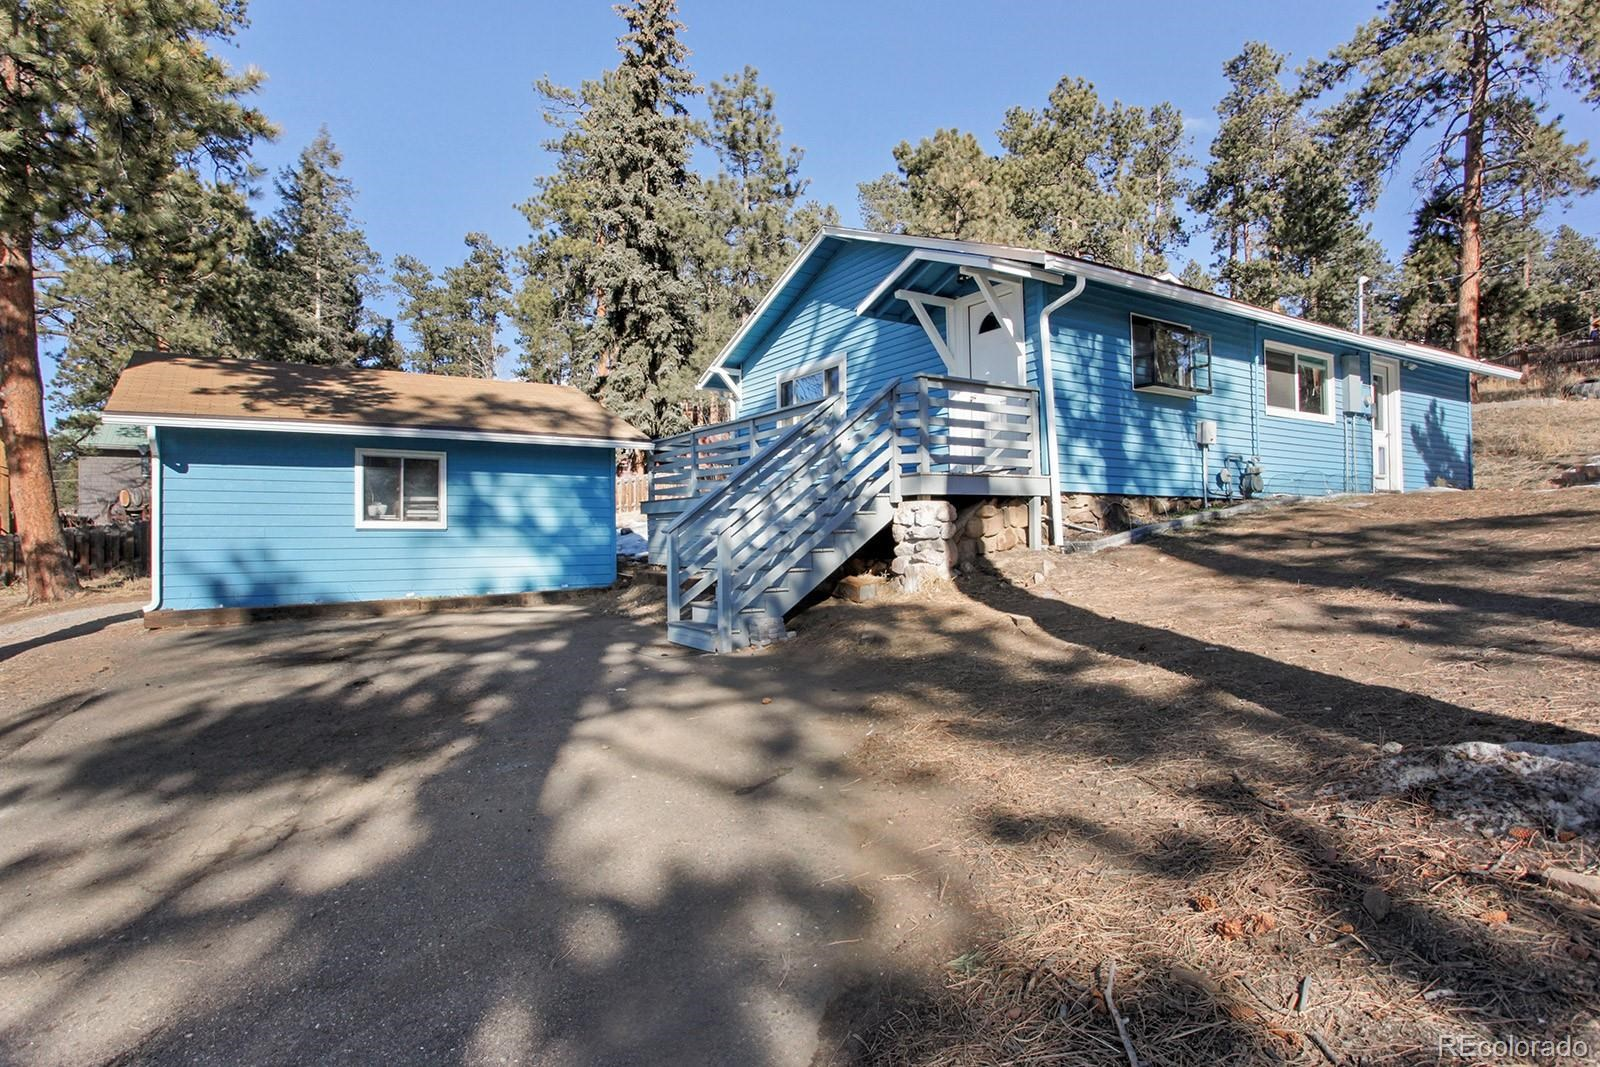 MLS# 9408188 - 4 - 4550 Parmalee Gulch Road, Indian Hills, CO 80454